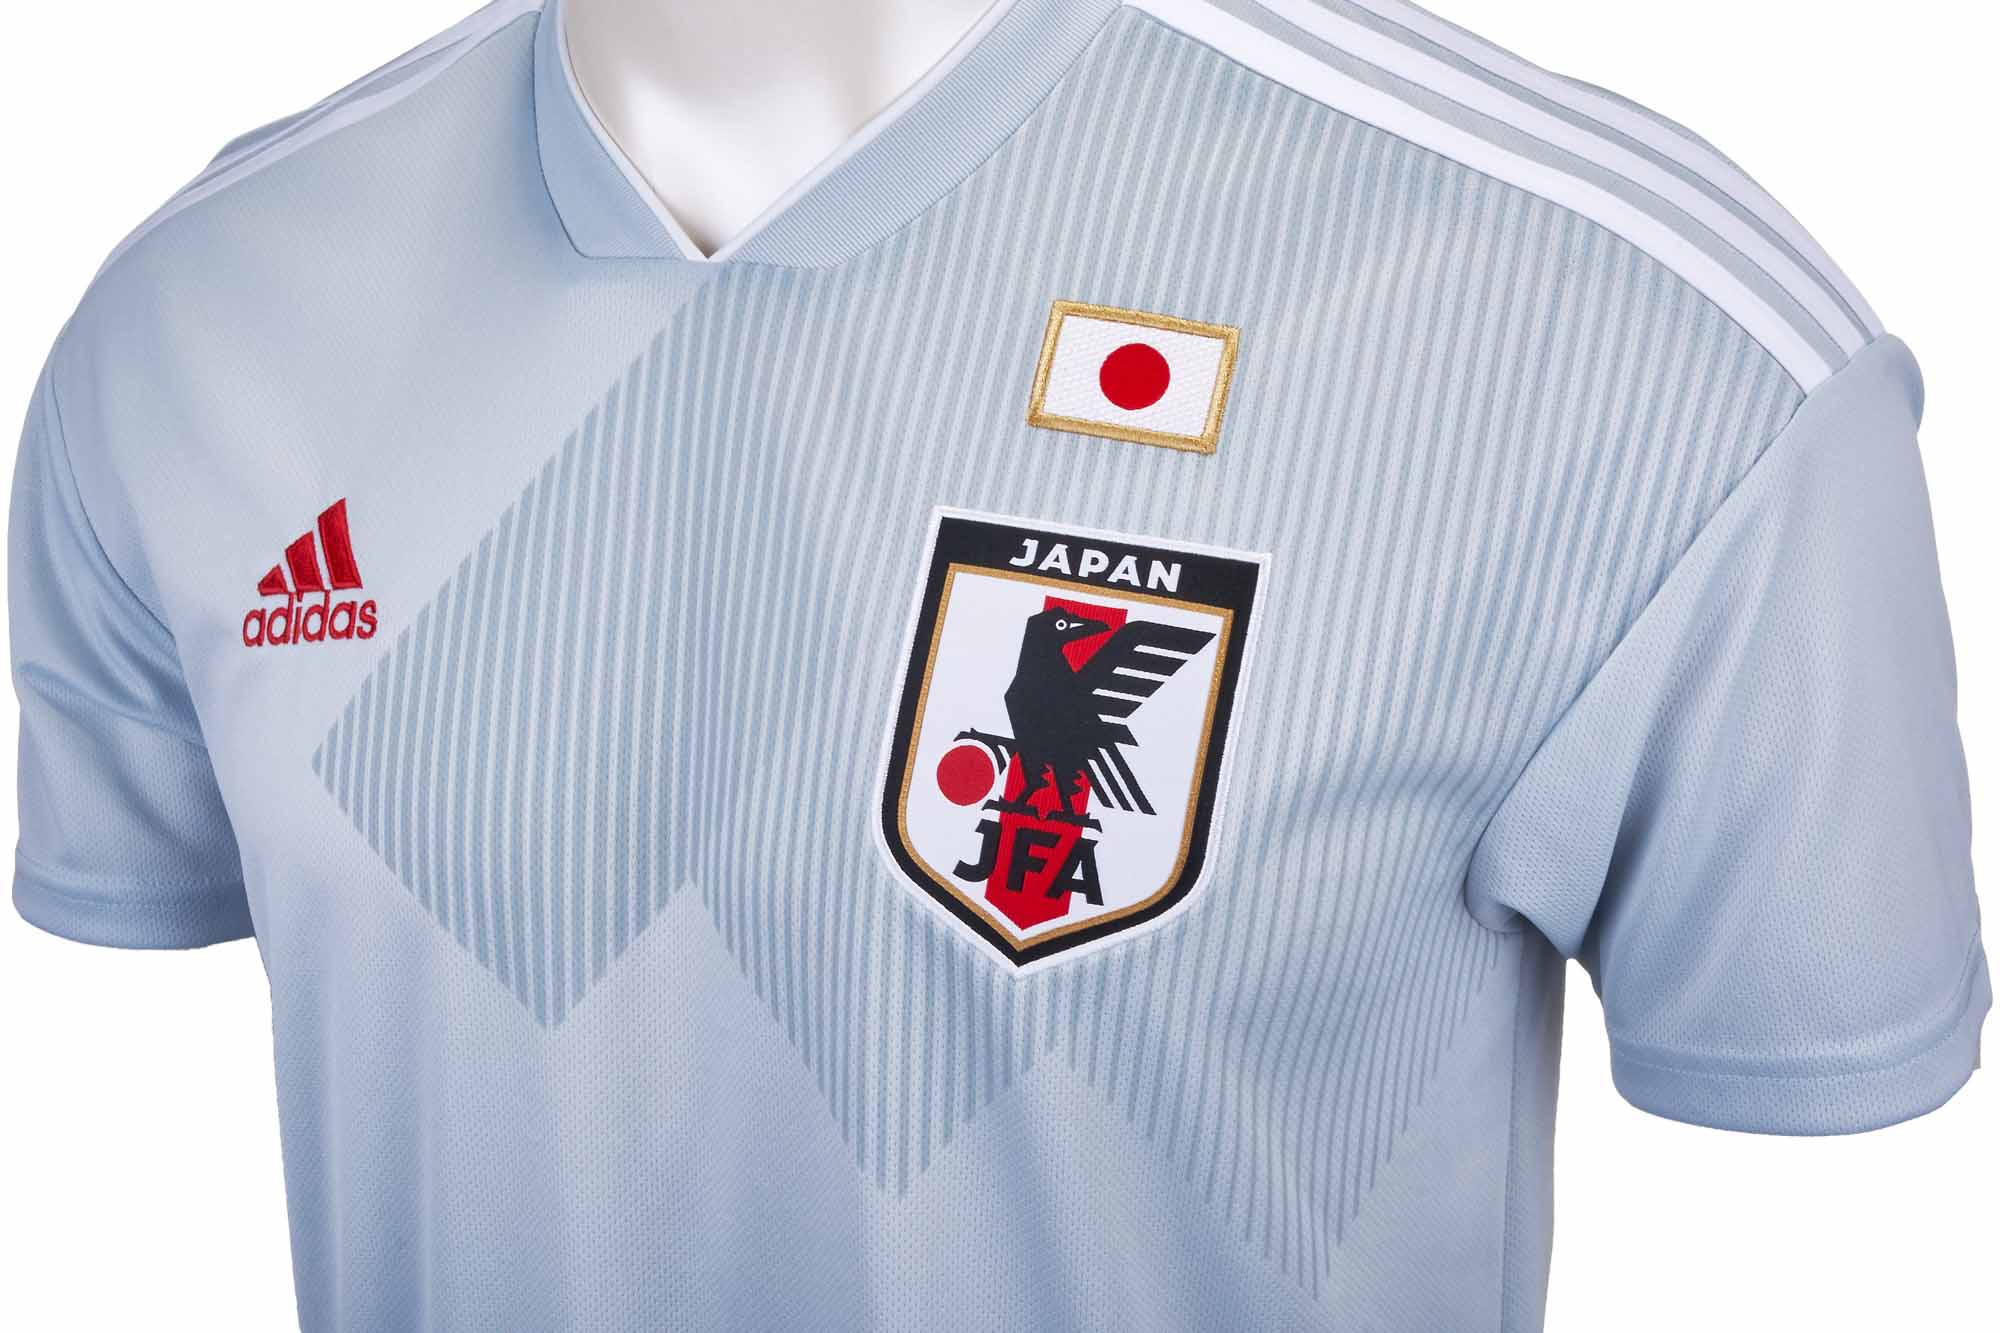 com Adidas Jersey 2018-19 Away - Soccerpro Japan